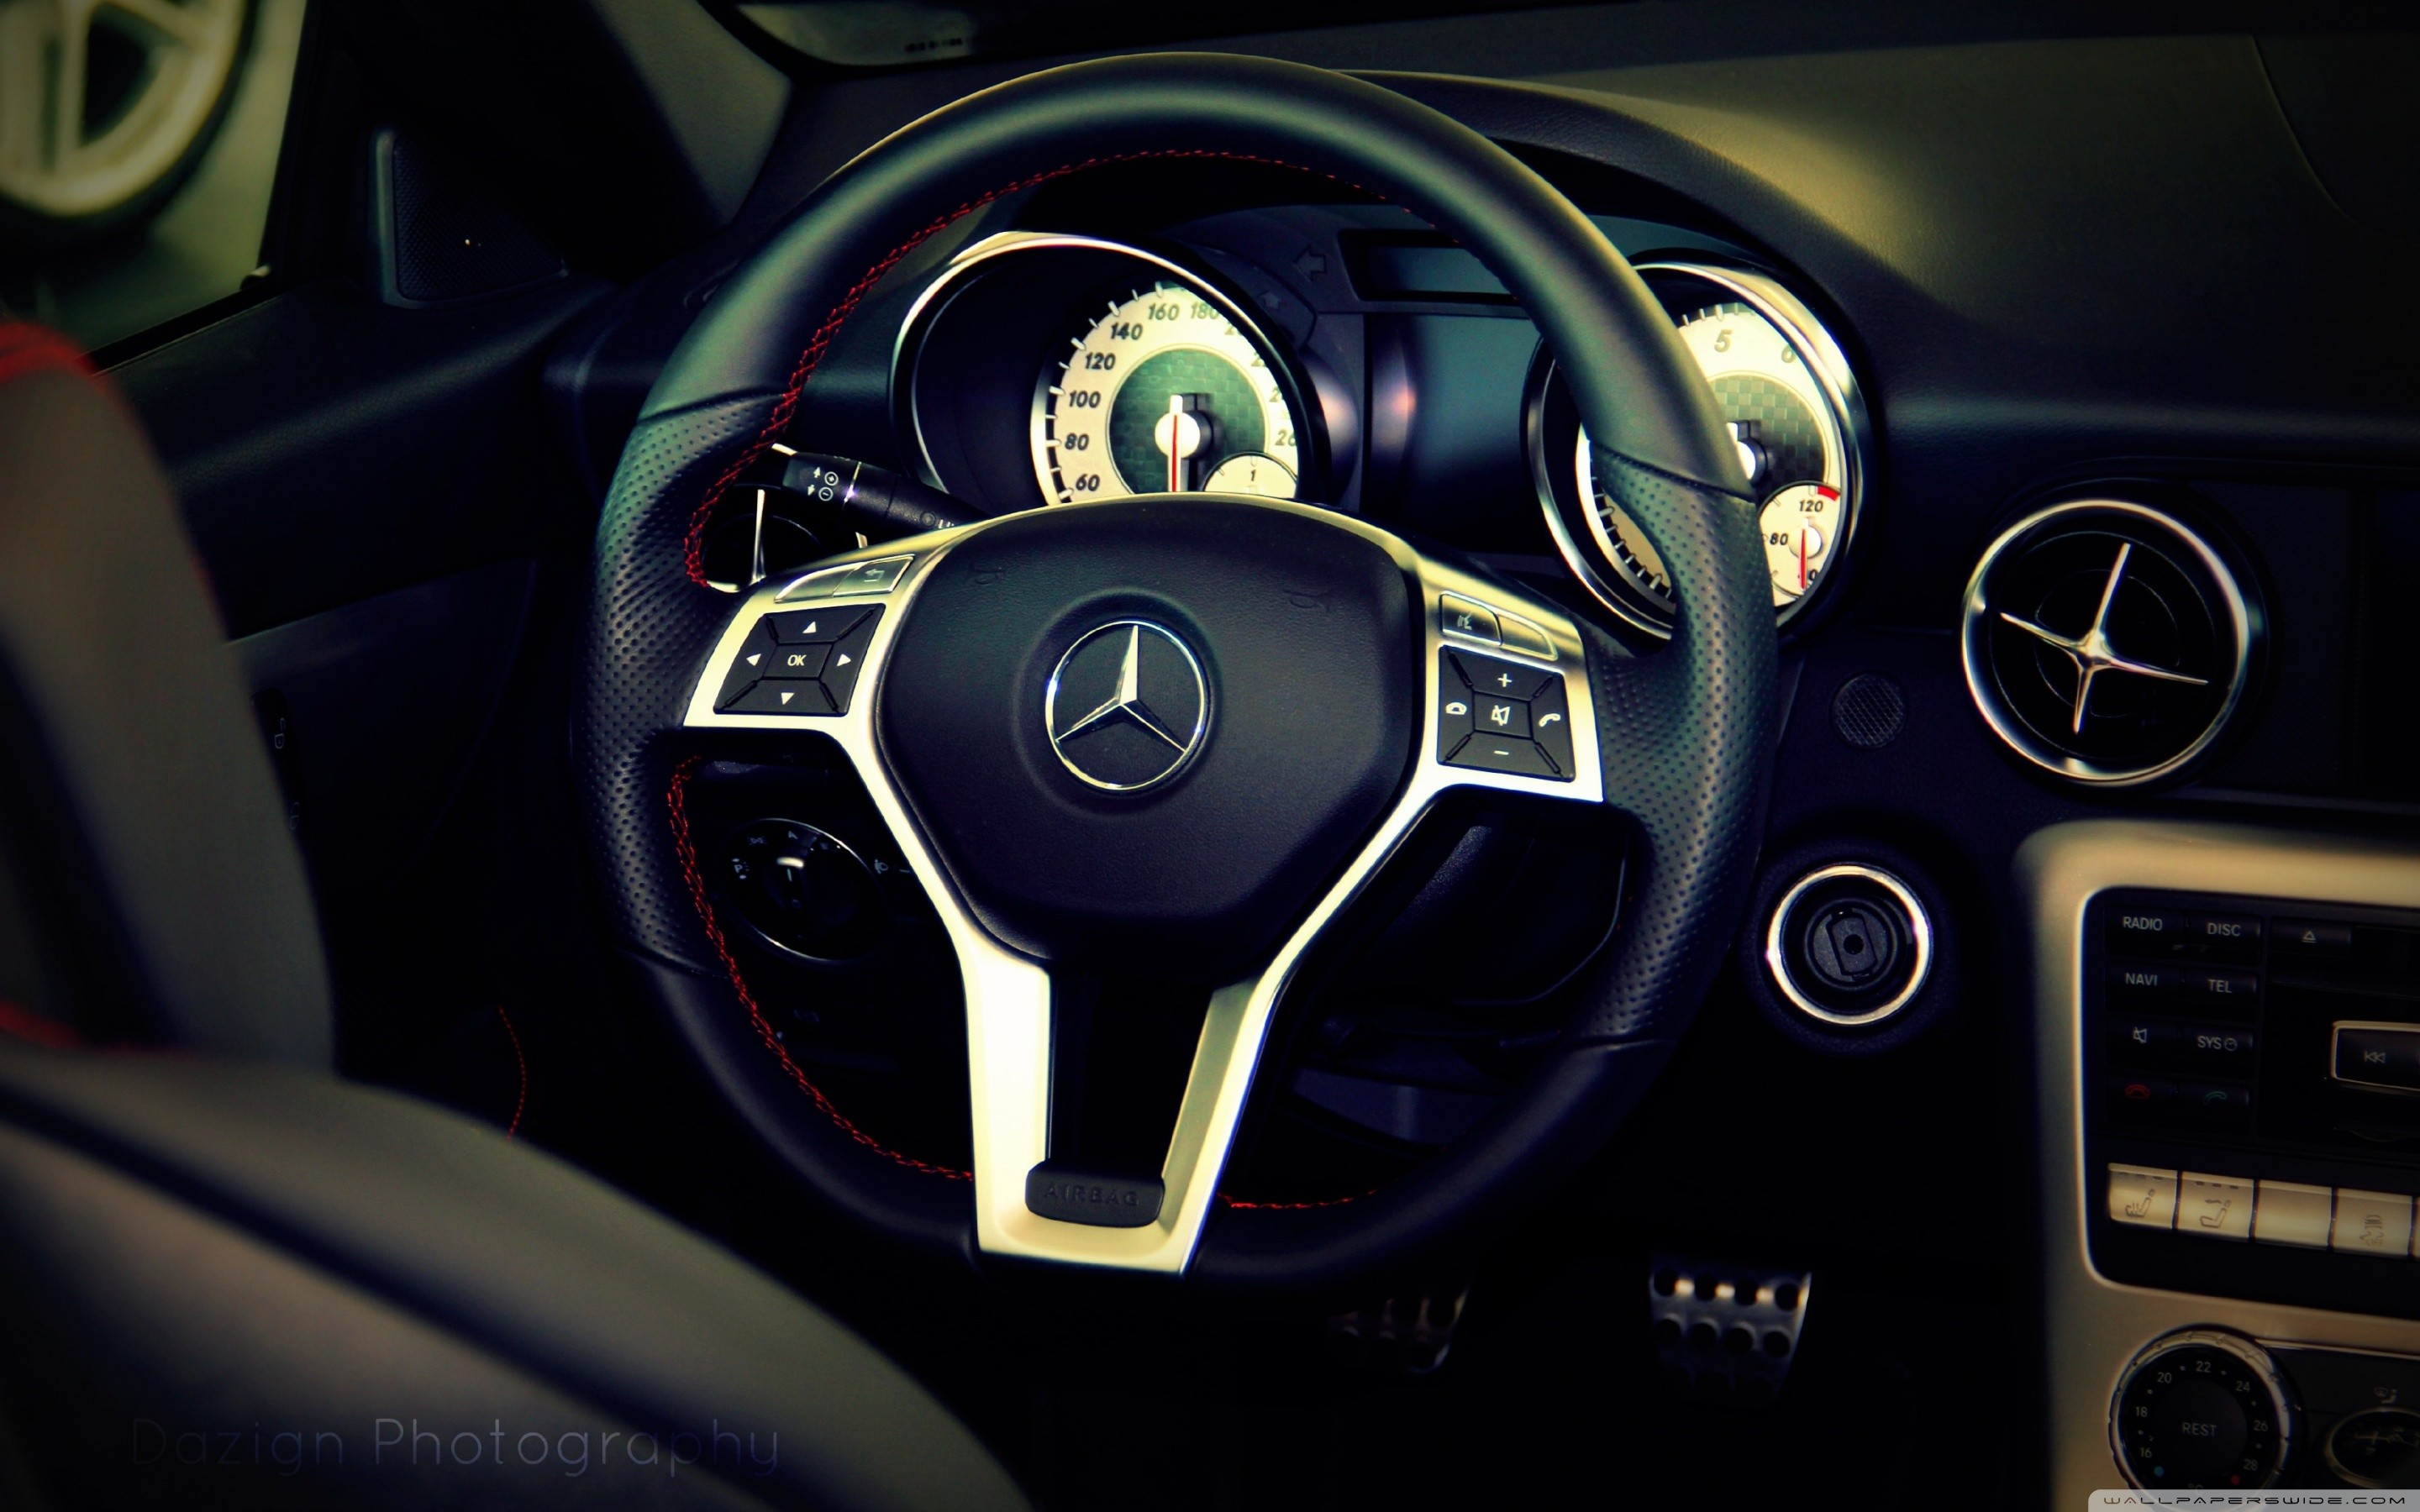 2880x1800 Mercedes Benz Logo Wallpapers High Quality To Download Wallpaper